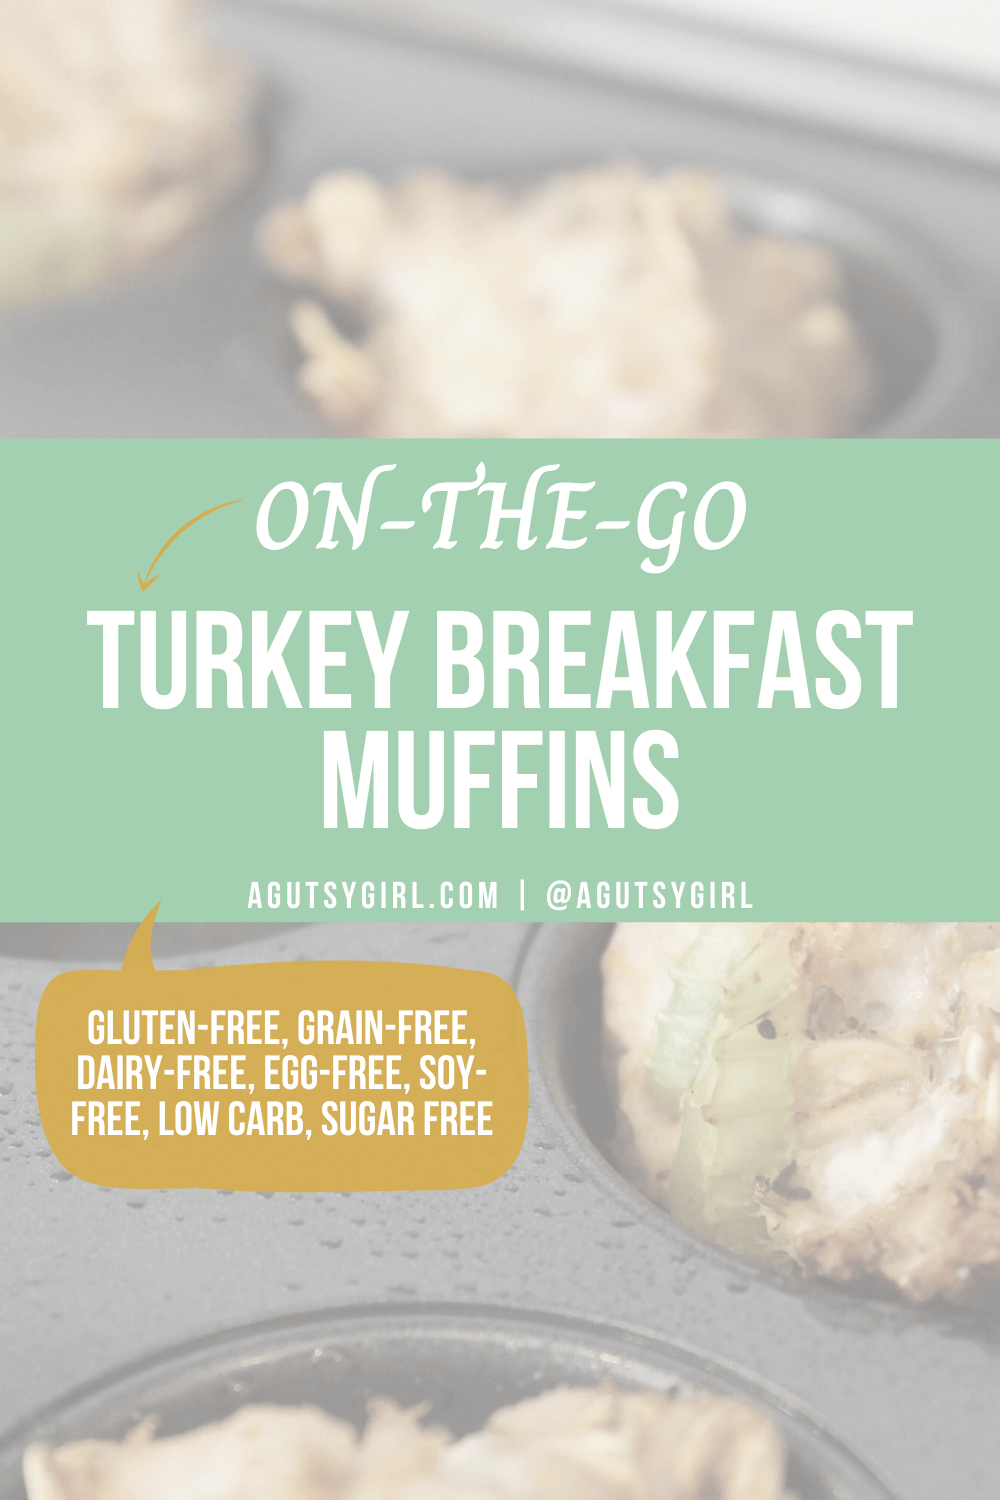 On-the-Go Turkey Breakfast Muffins agutsygirl.com #guthealth #leakygut #leakygutdiet #lowcarbrecipes